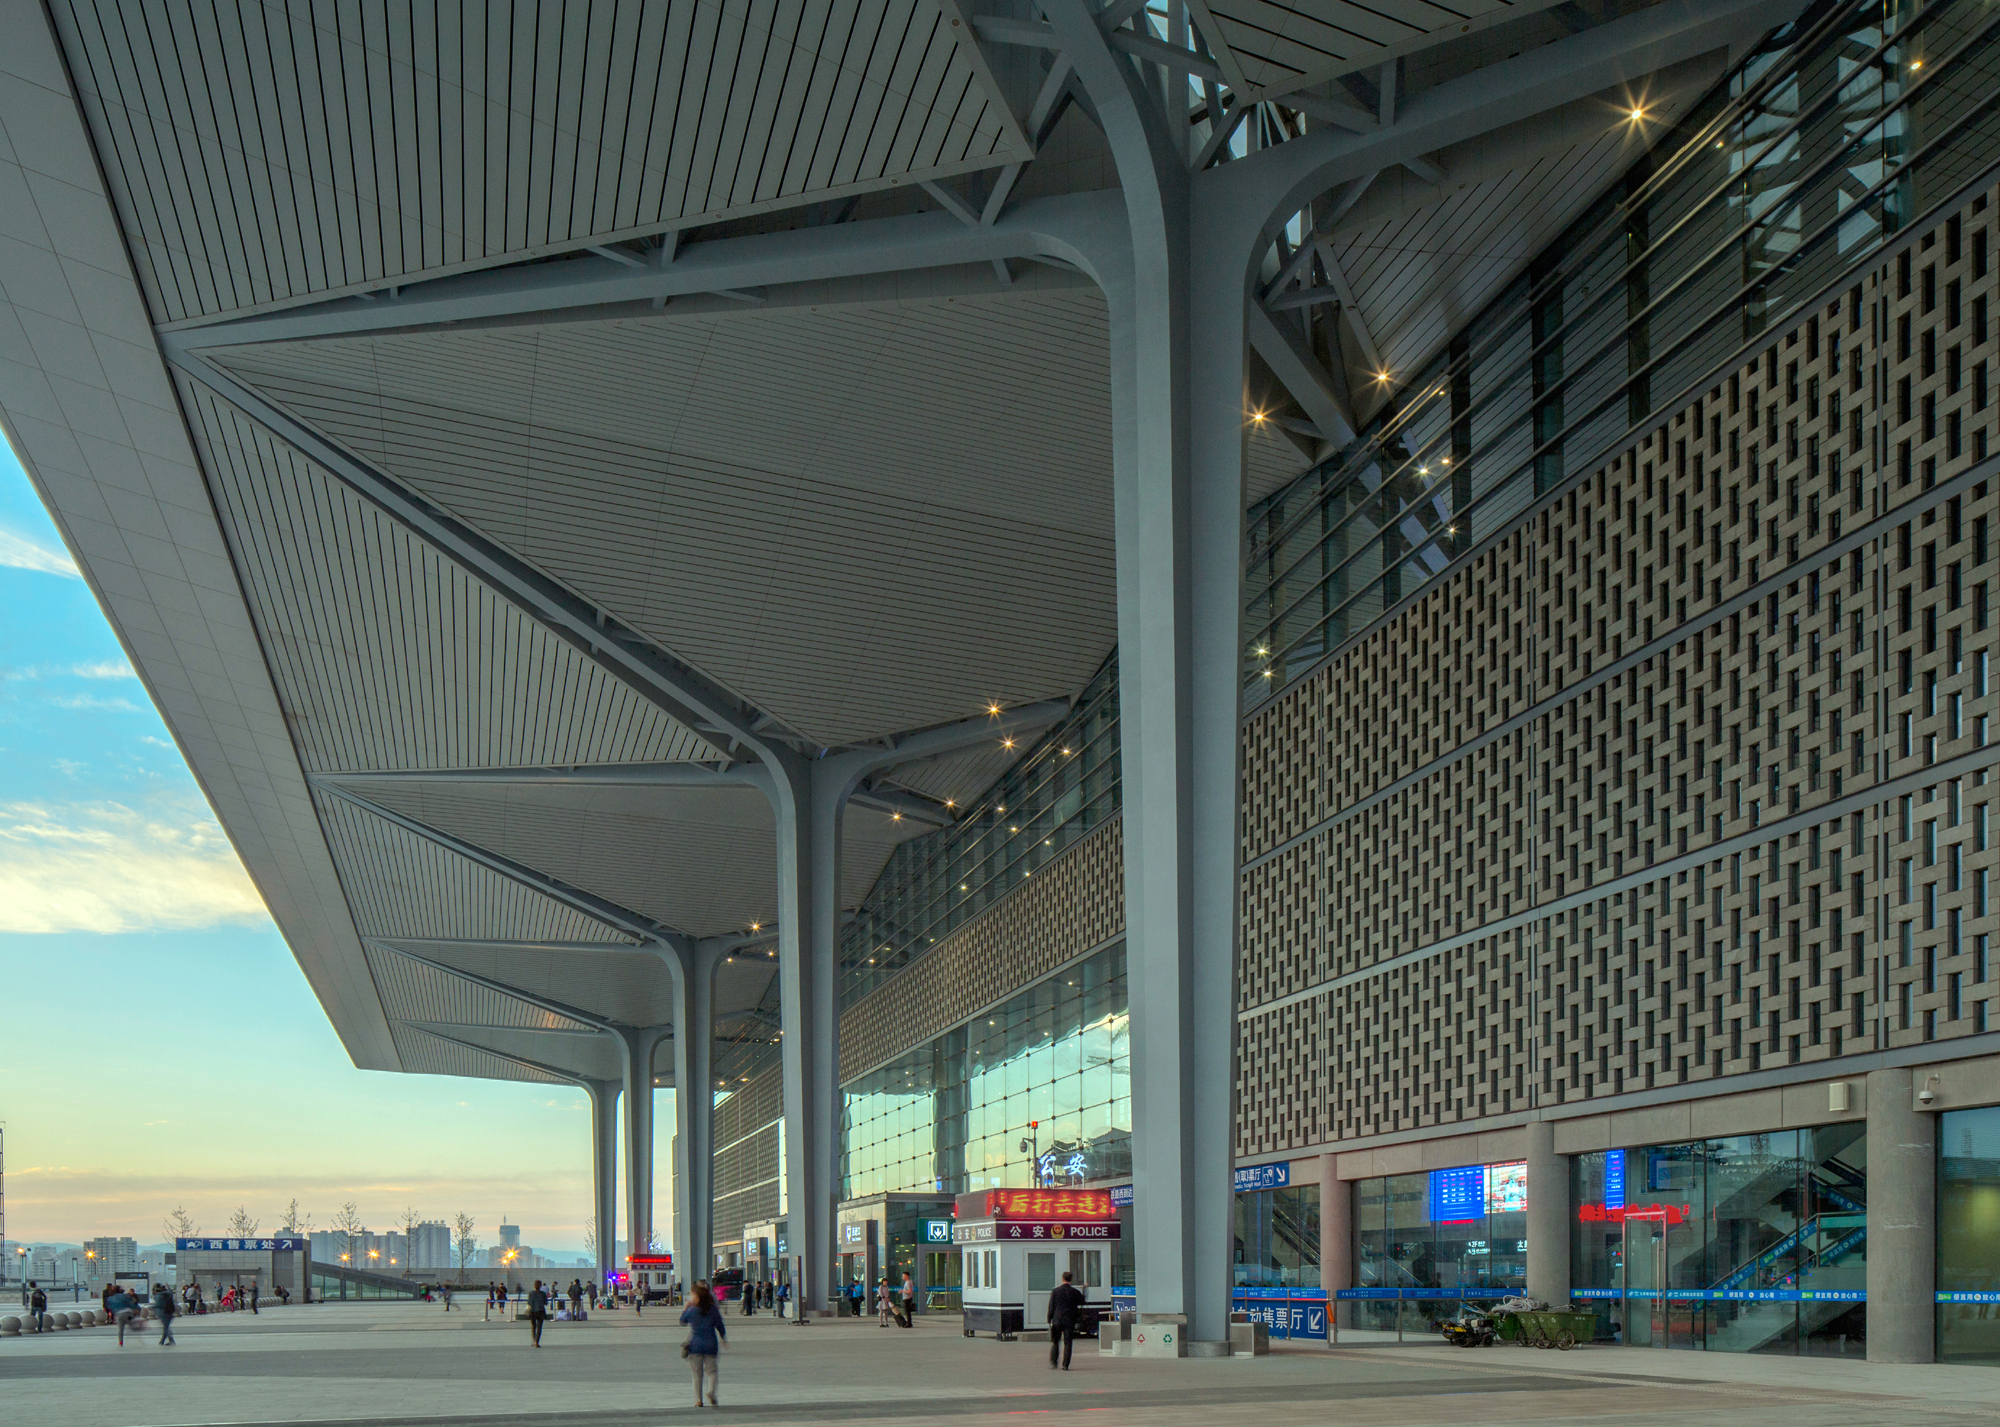 Train Station architecture and design | ArchDaily